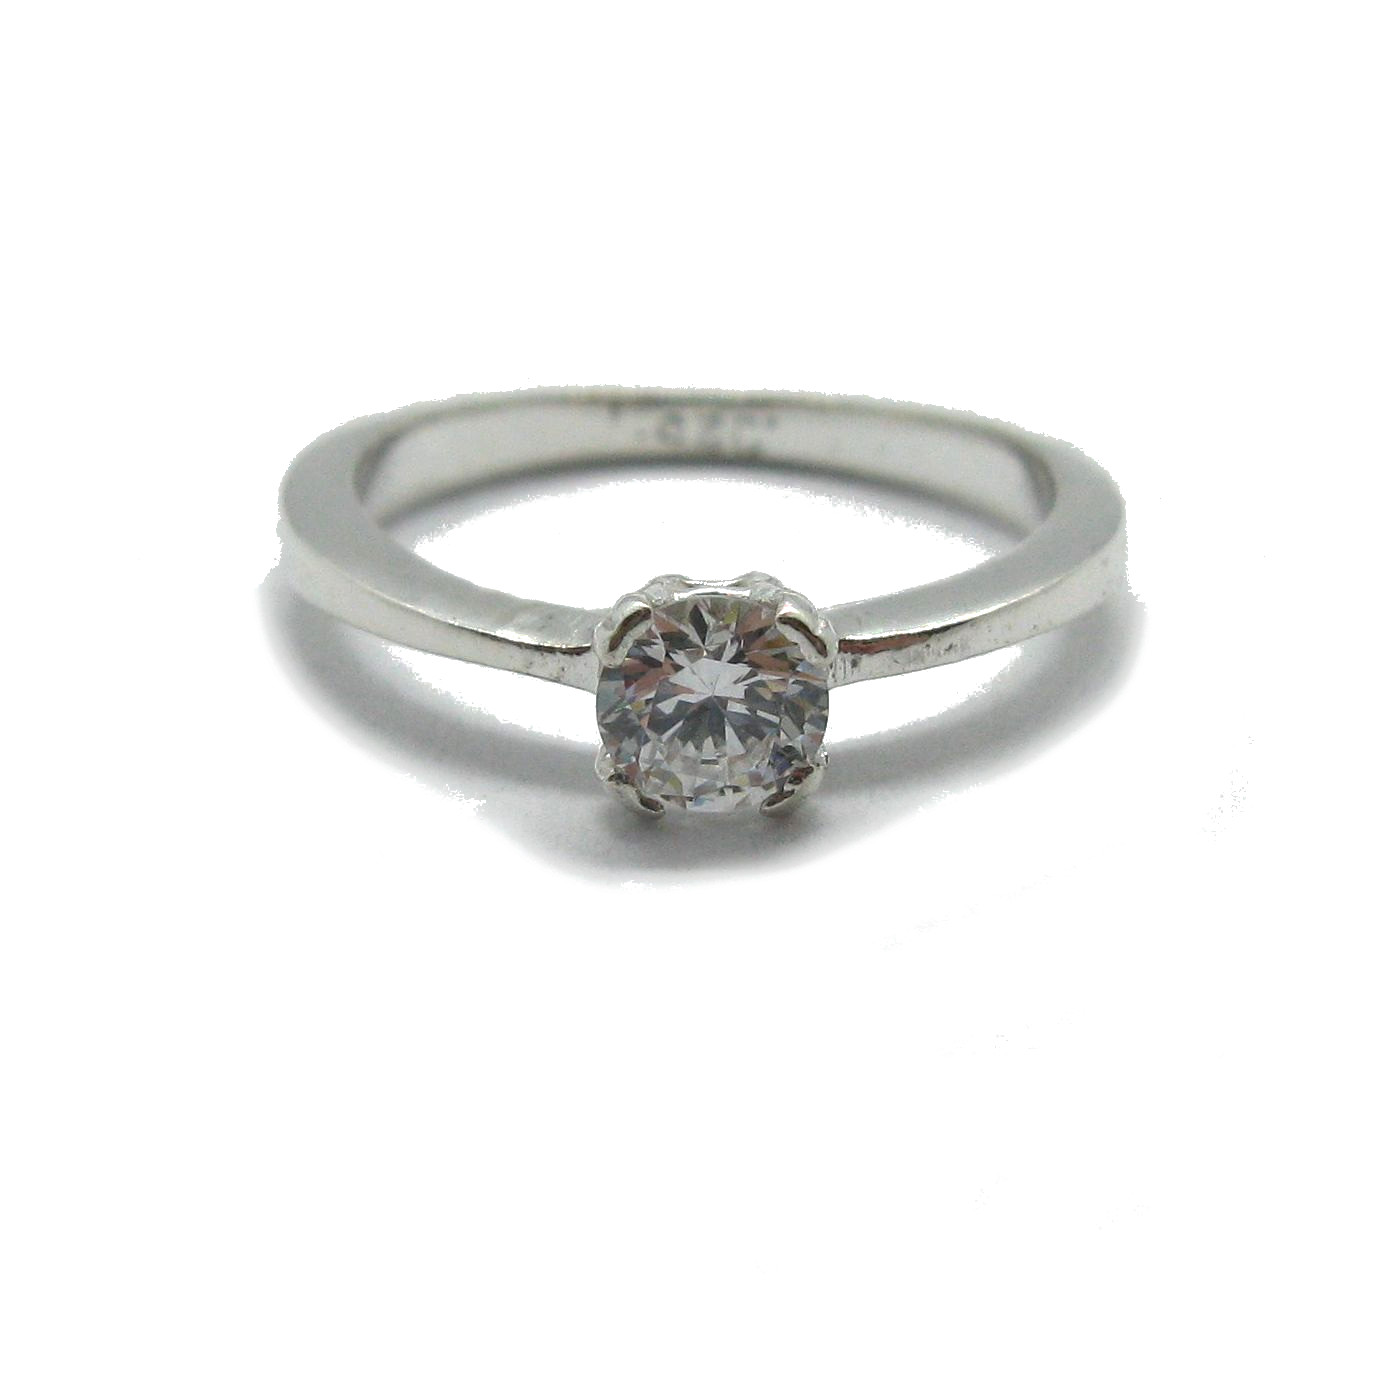 Silver ring - R001802